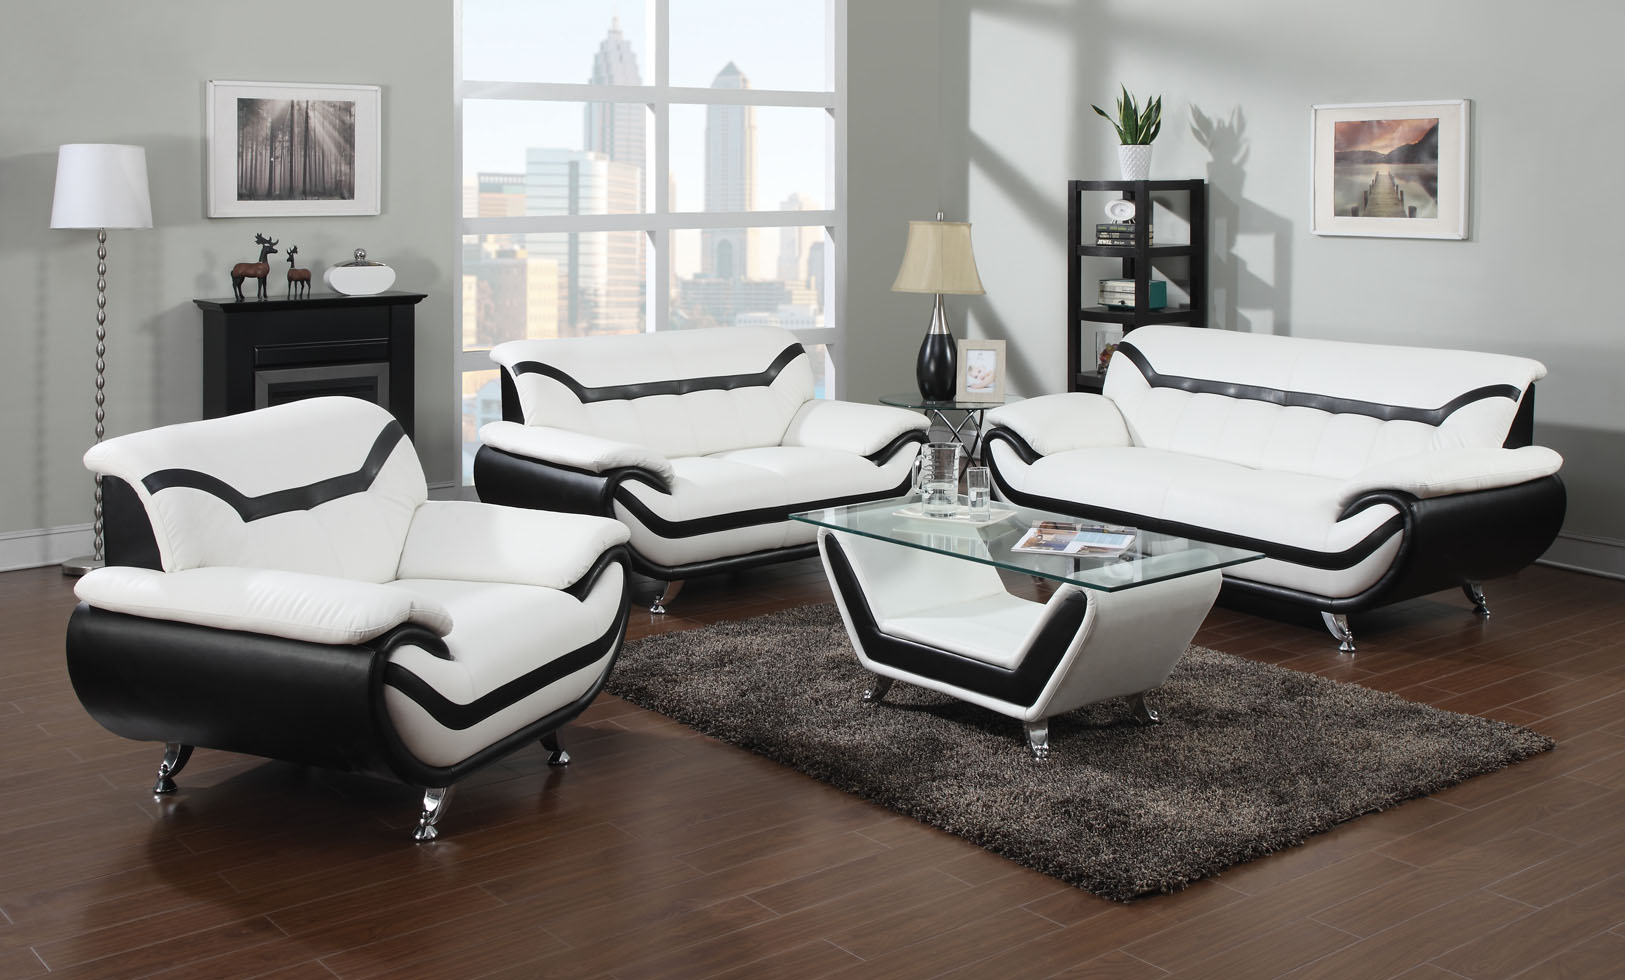 sofa nice leather compare shoppingbuy set white on furniture id online low prices living couch room